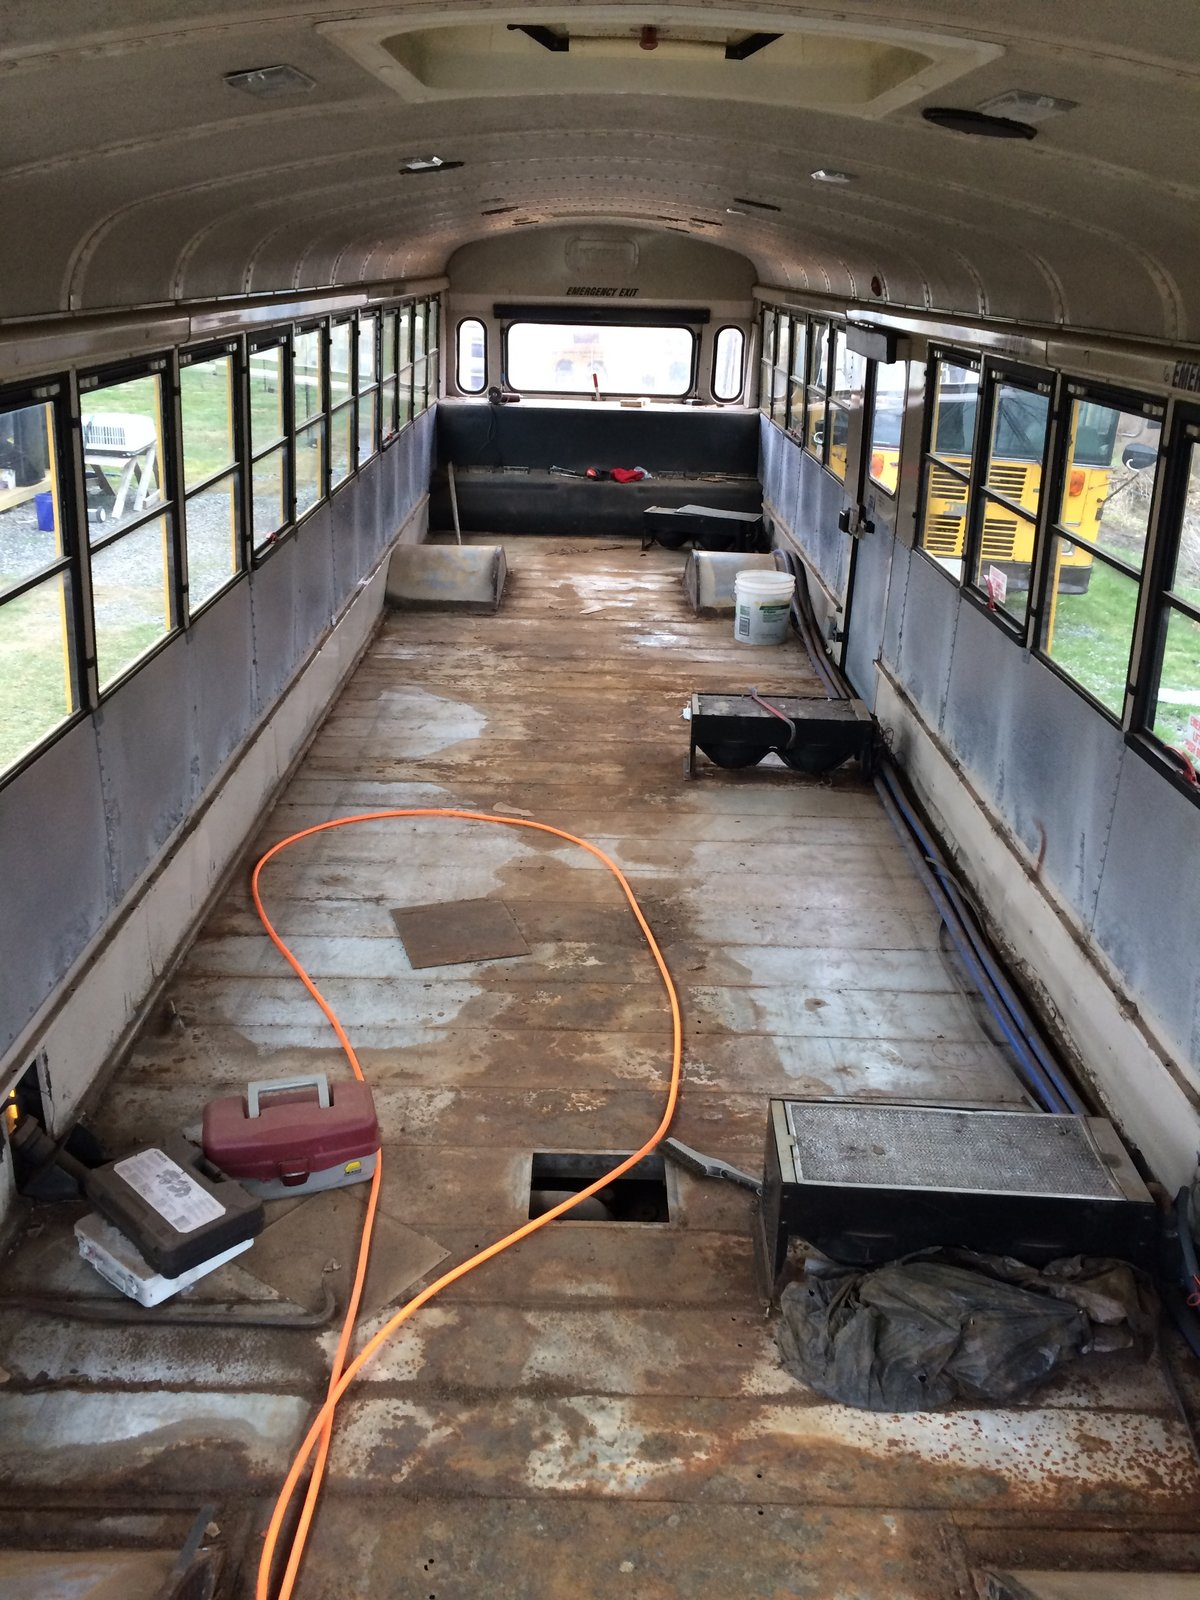 Looking towards the back of the bus, with the seats removed.